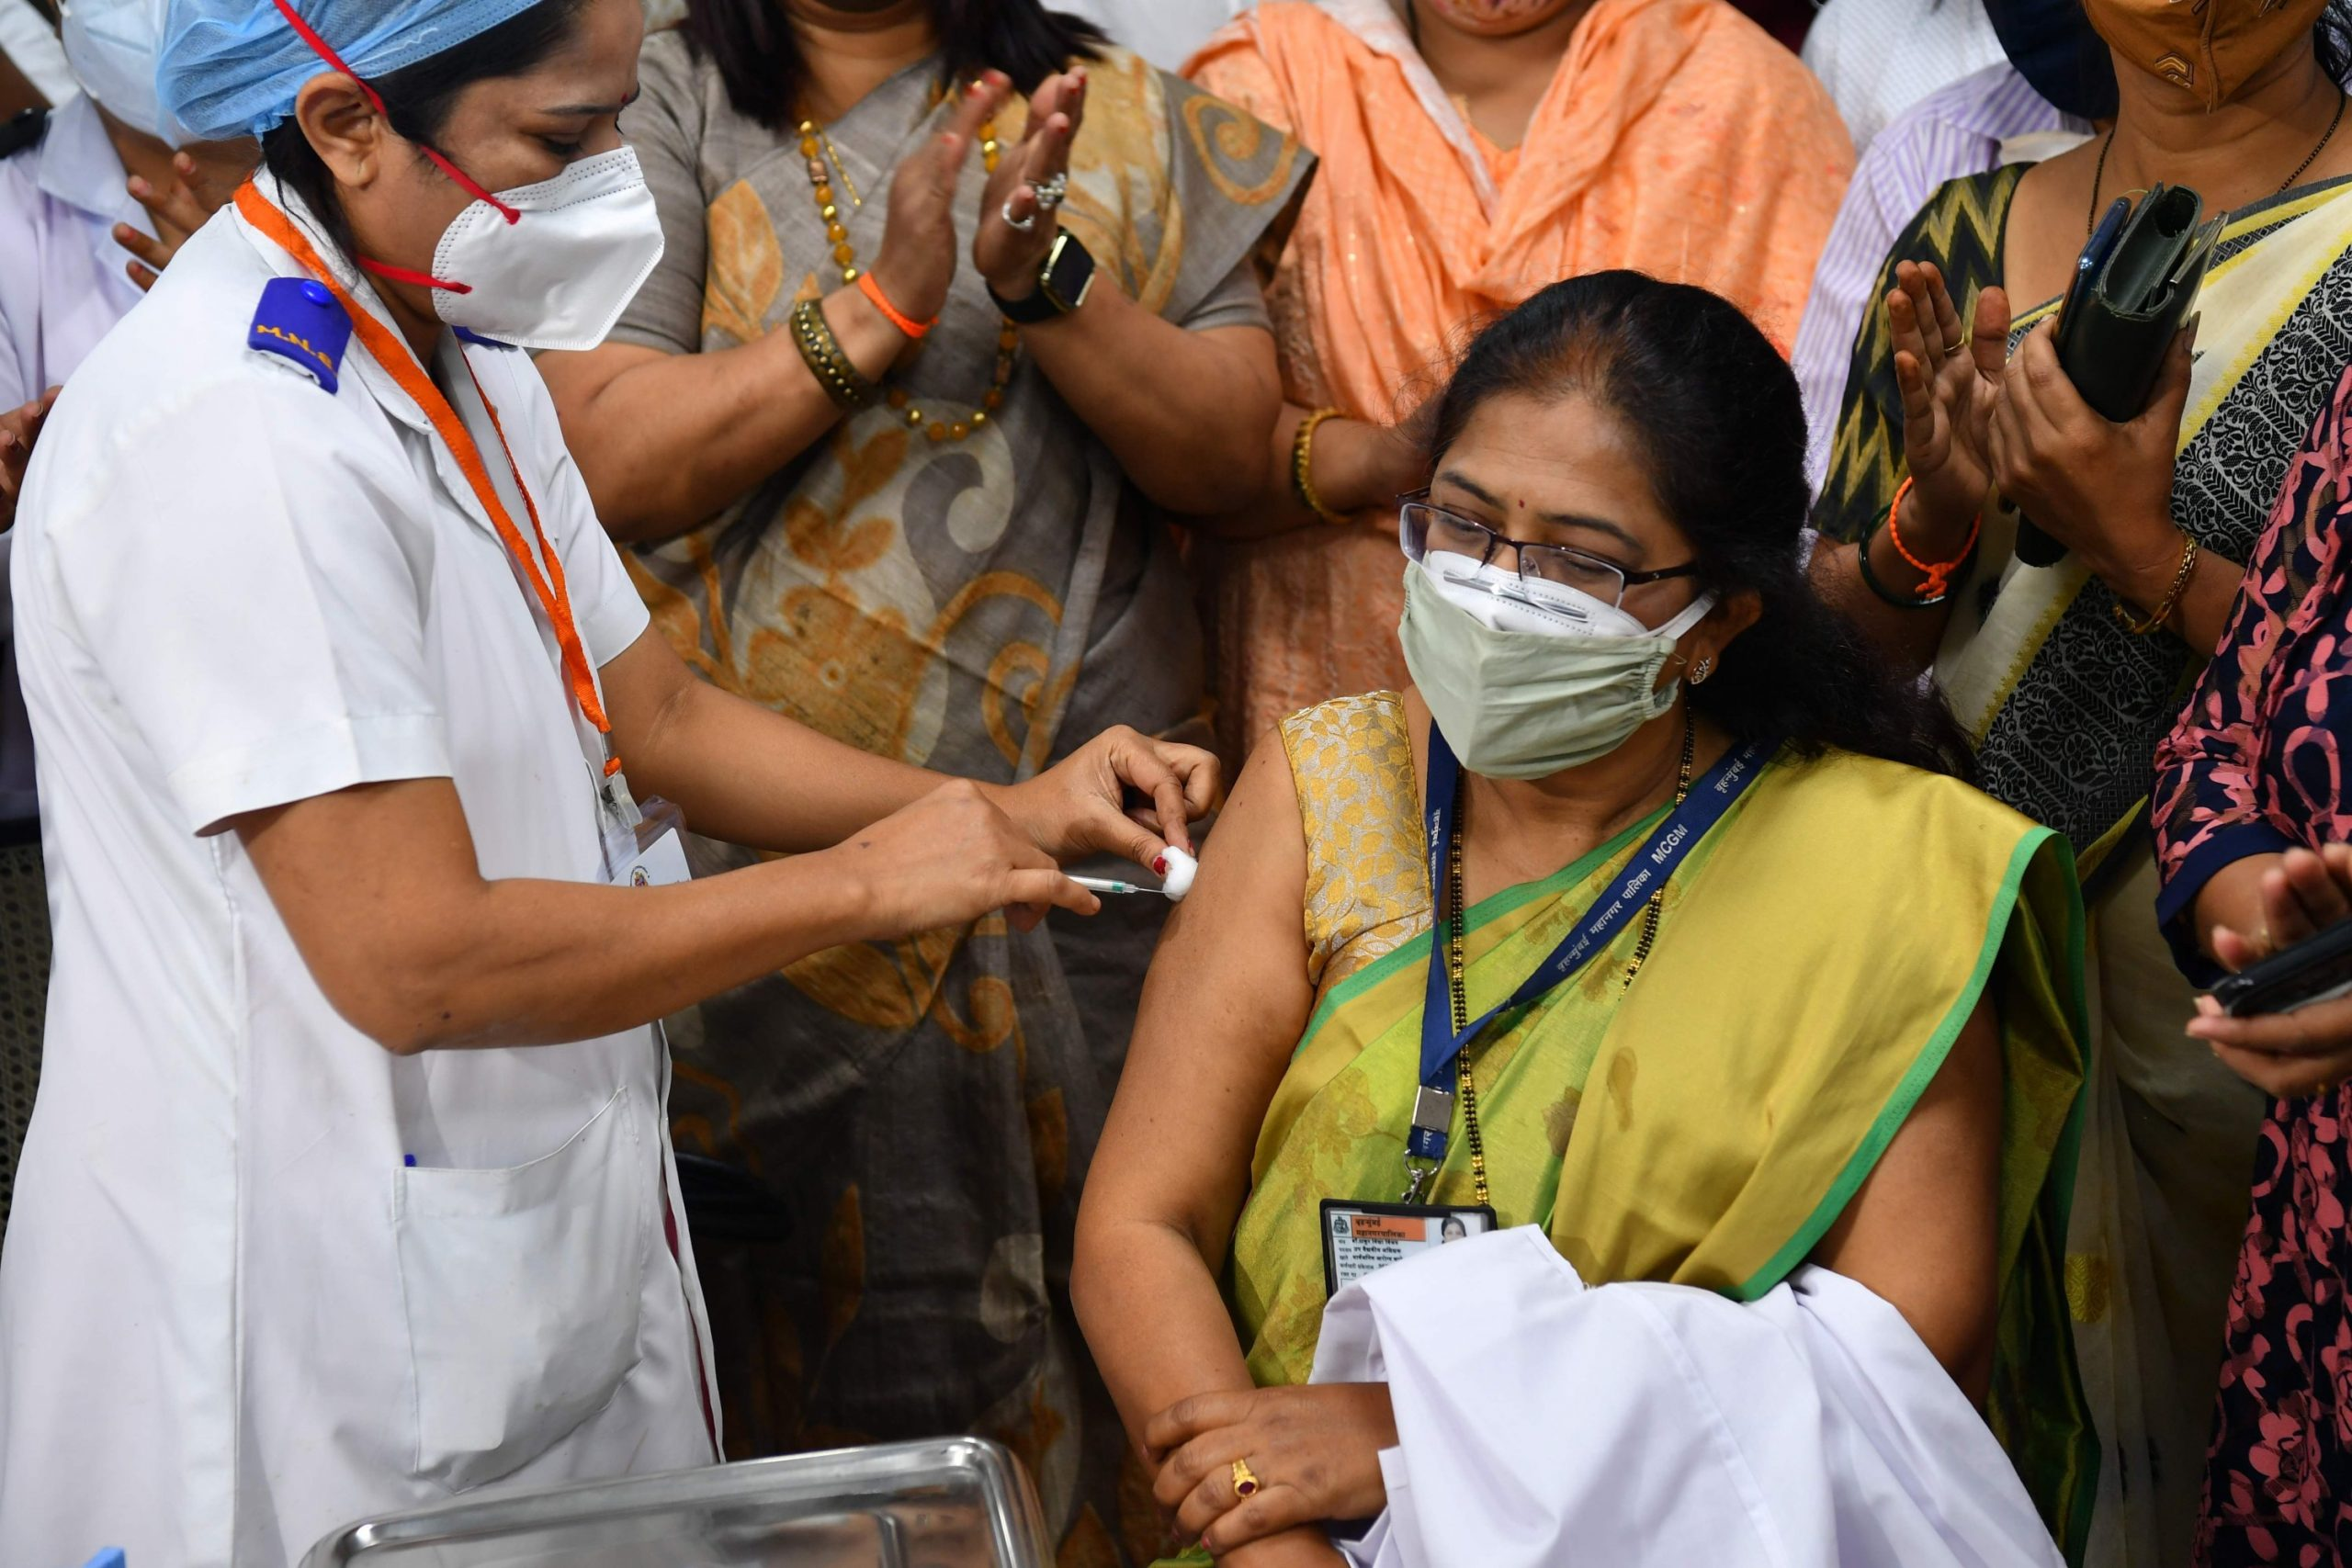 $10 for water & salt injection, India's largest vaccine scam!